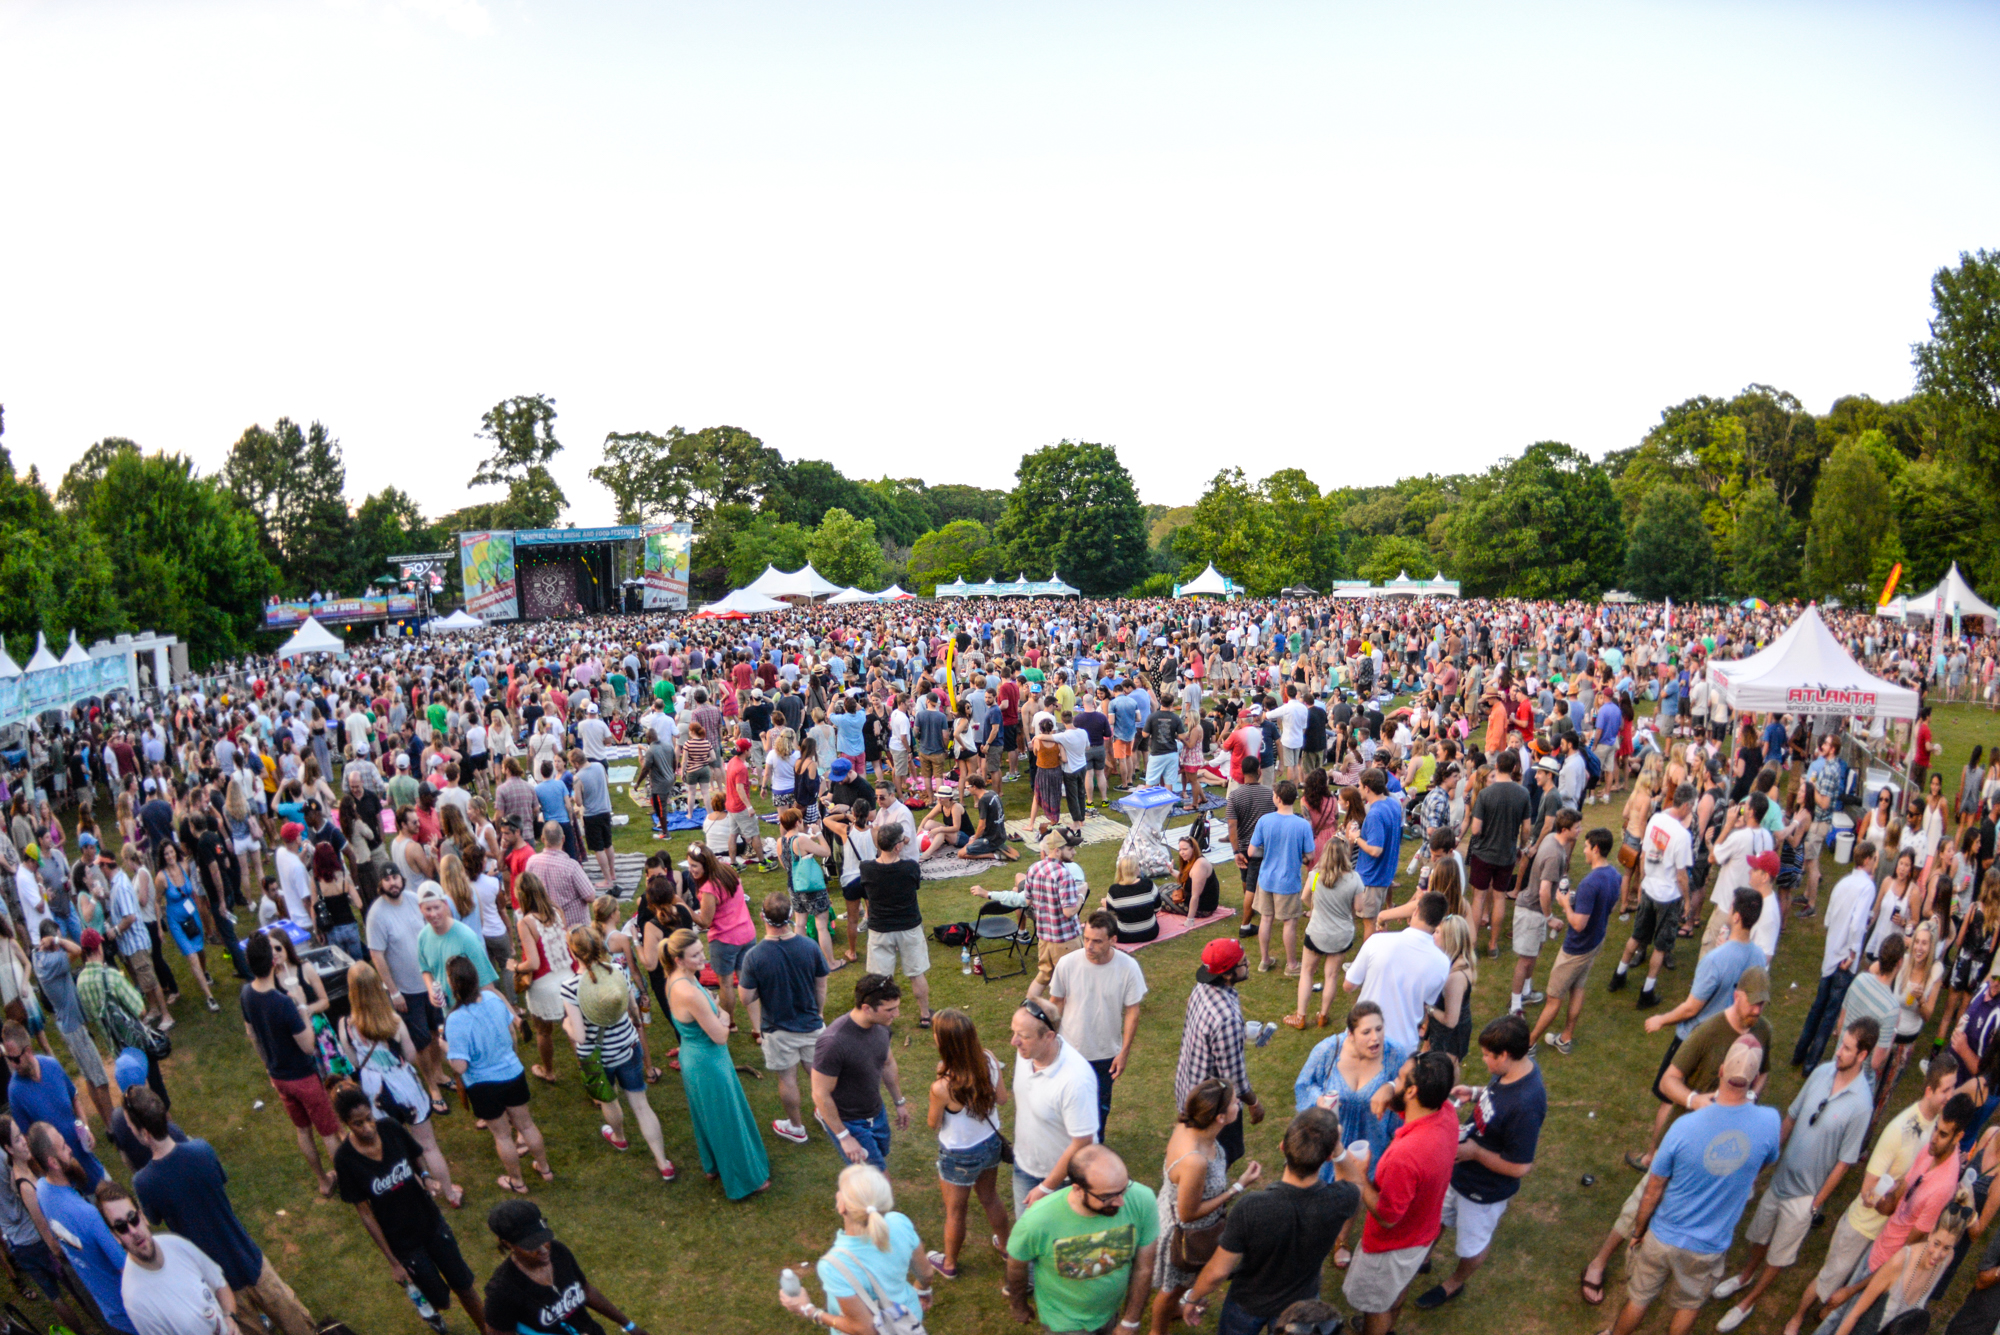 A photo of The Candler Park Music Festival, held June 1 and 2 this year.